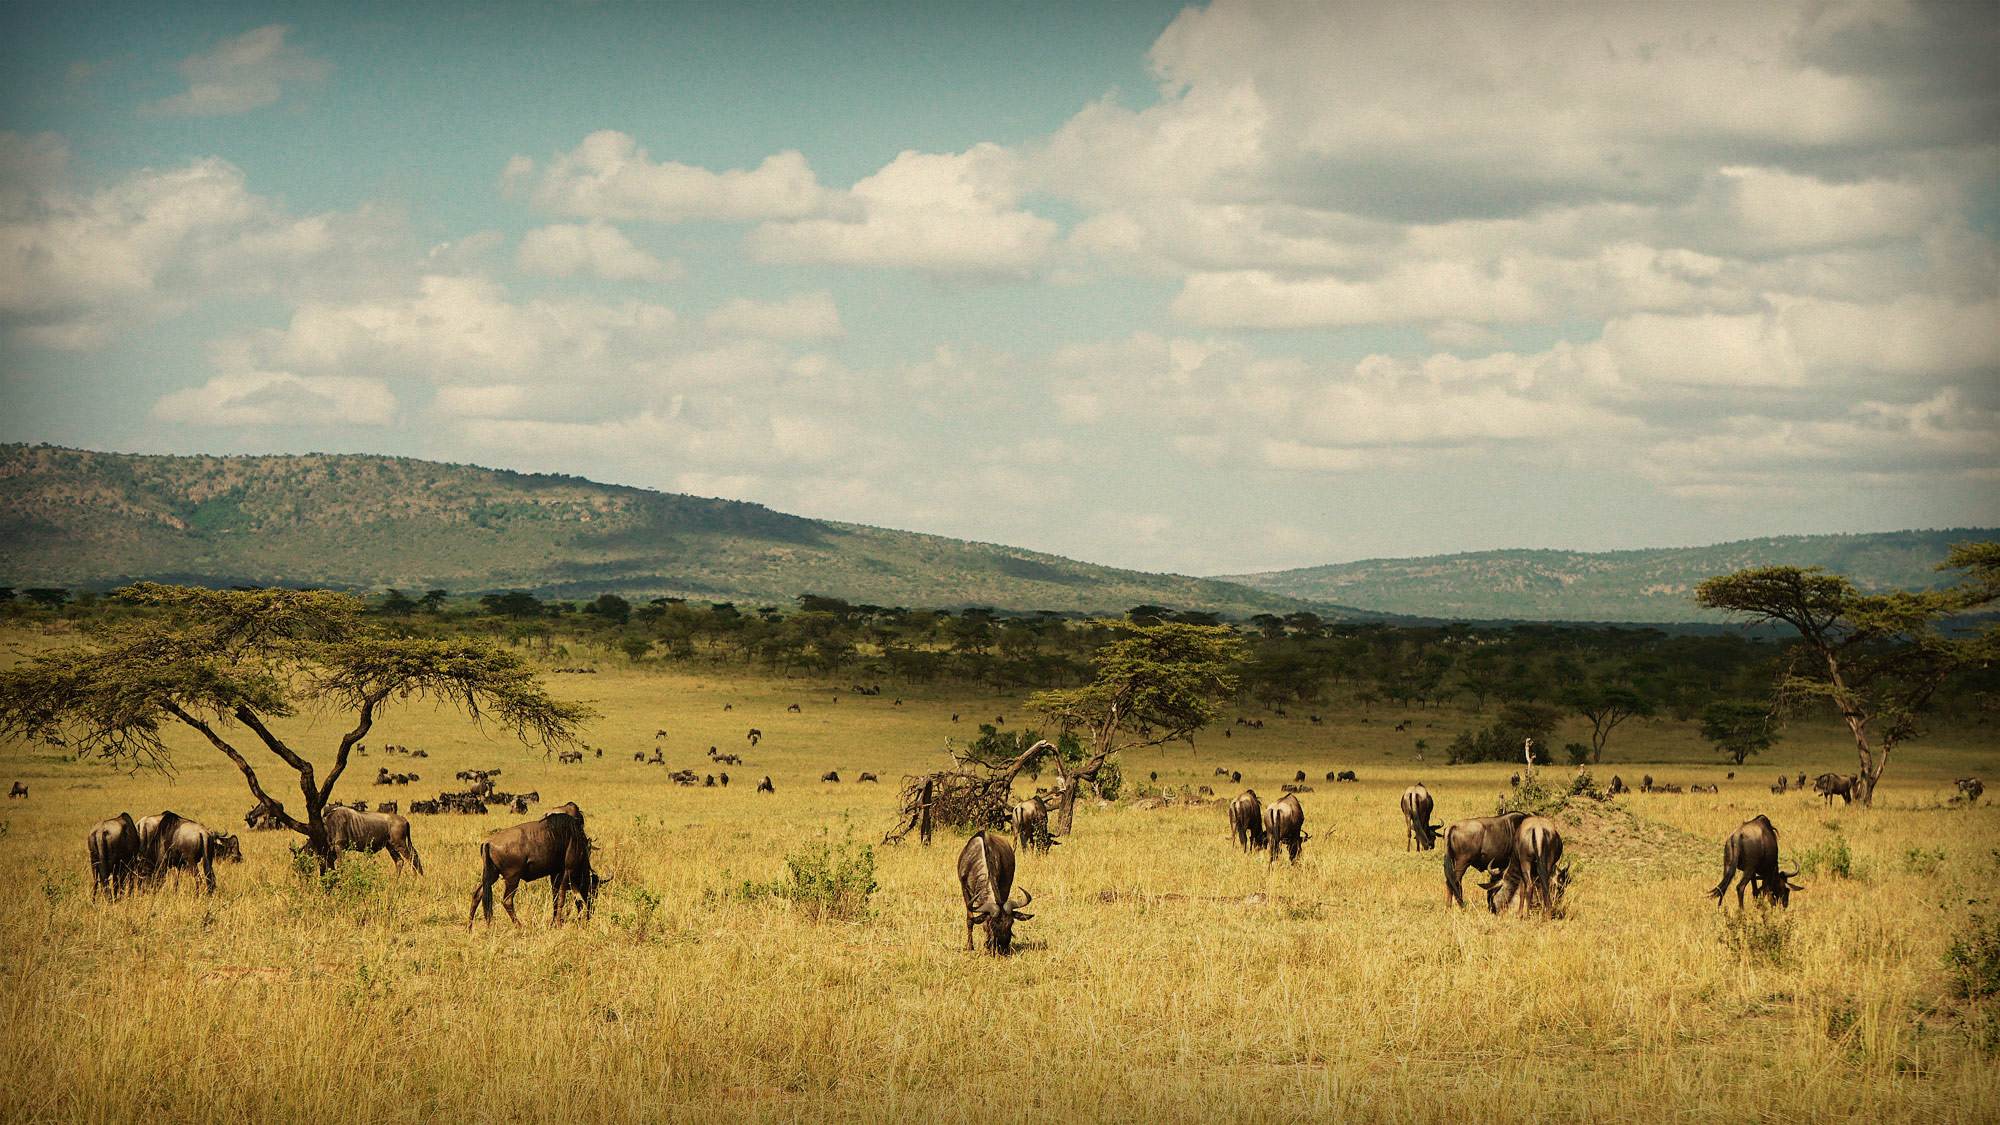 Video: Serengeti & The Great Migration